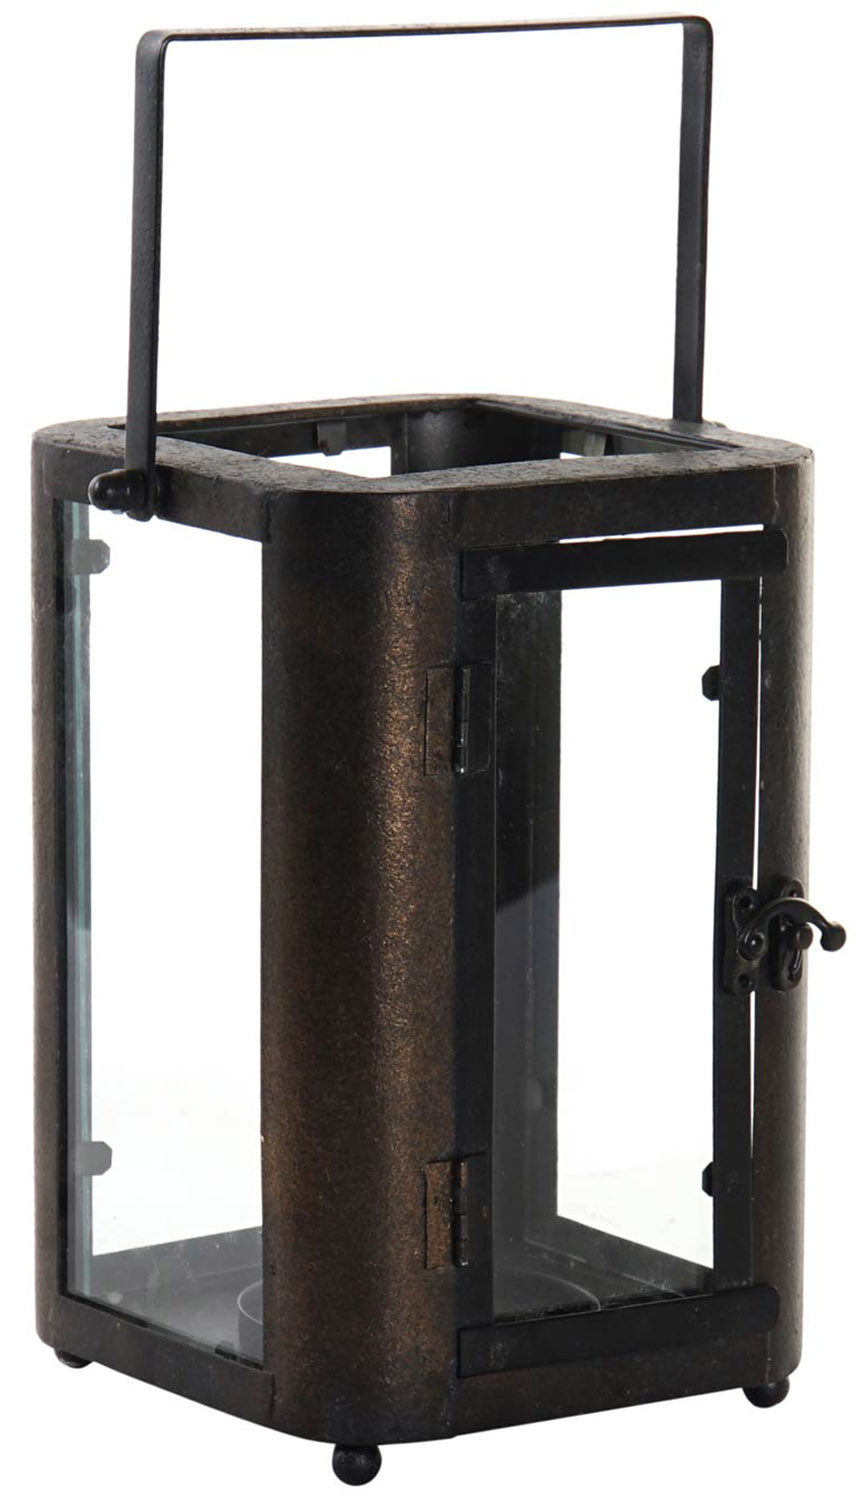 Candle holder Black Decorative Metal and Glass Candle holder Original, Decoration Inside/Outside / 18,5x18,5x23cm - Home and